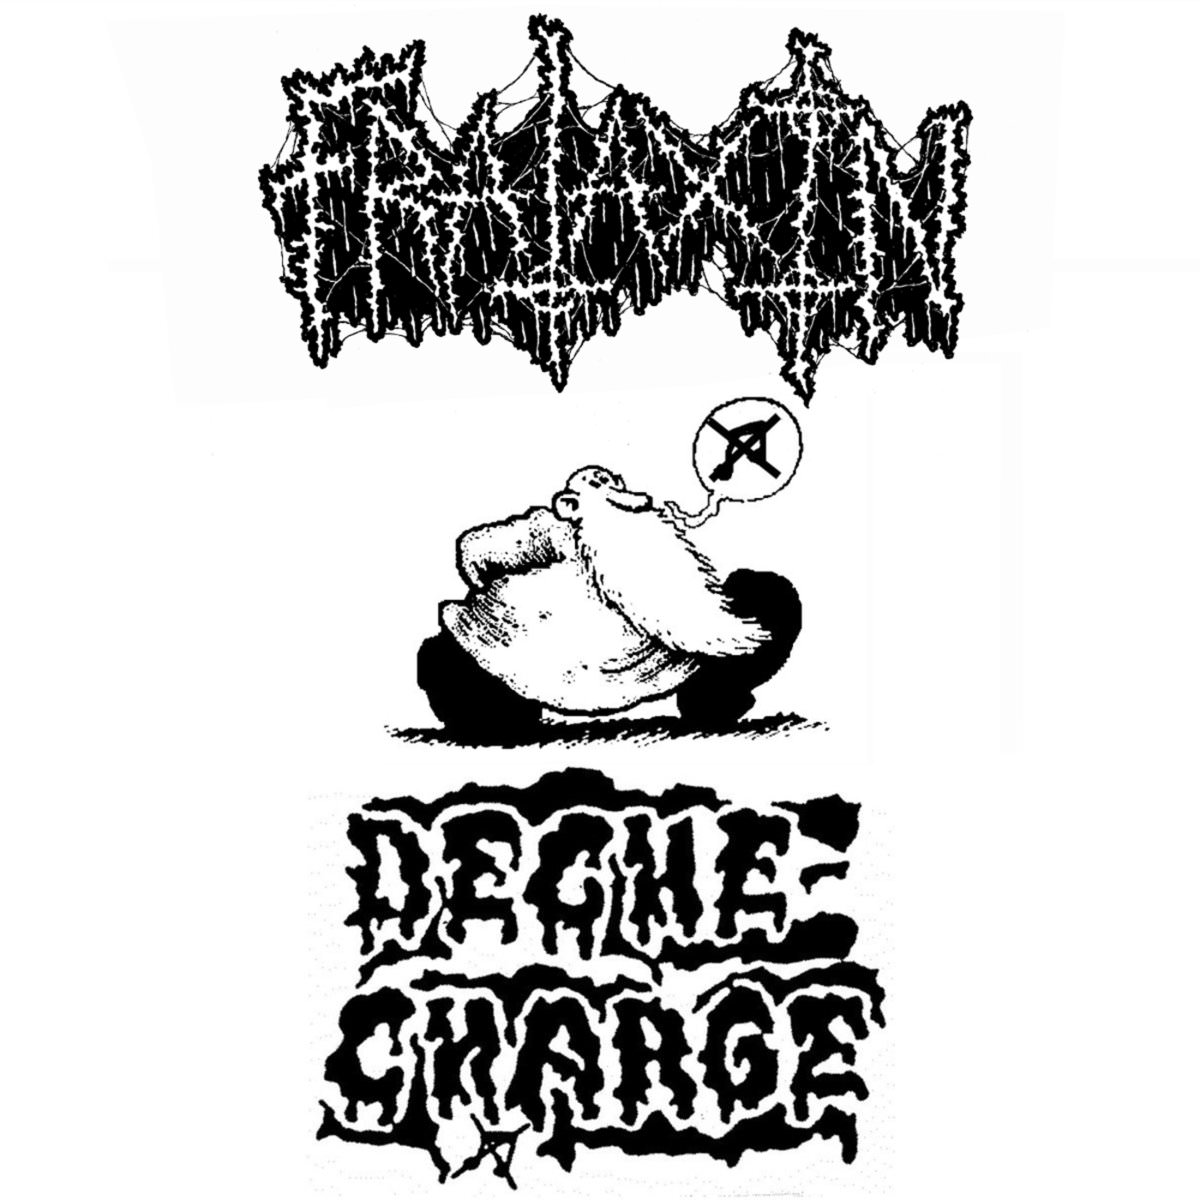 FRATAXIN / DECHE-CHARGE CS